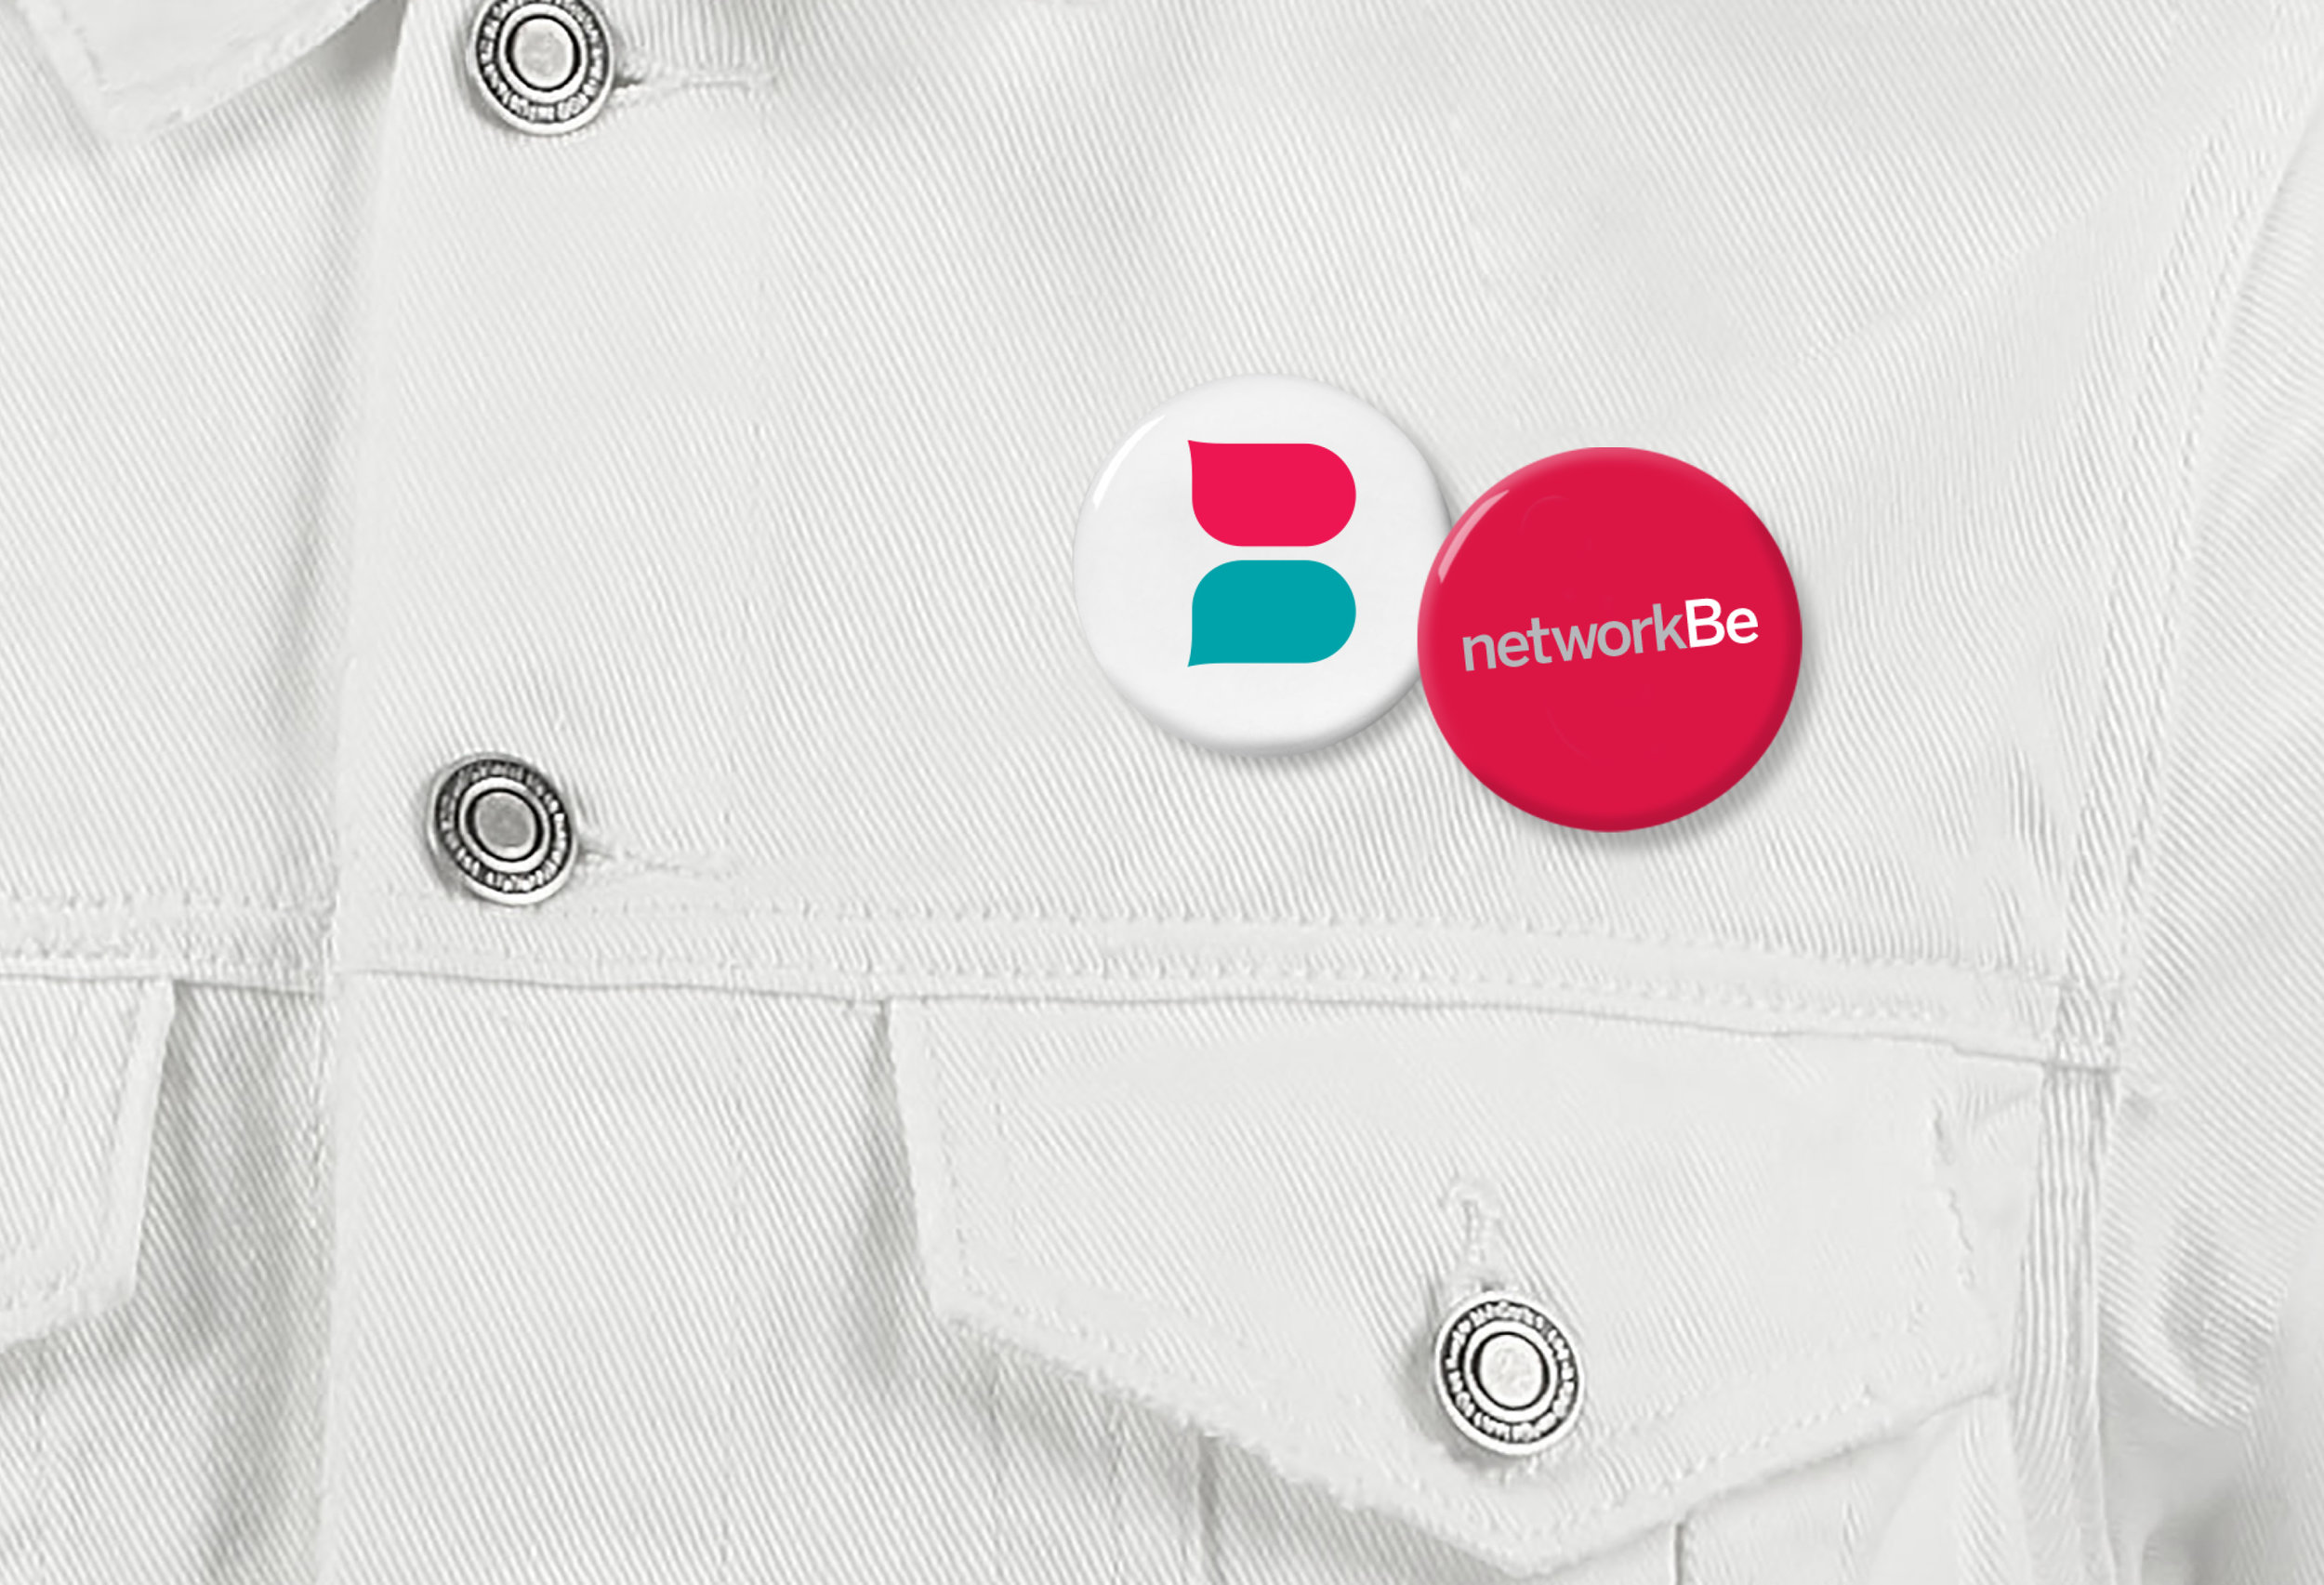 Network Be images of site white jacket.jpg